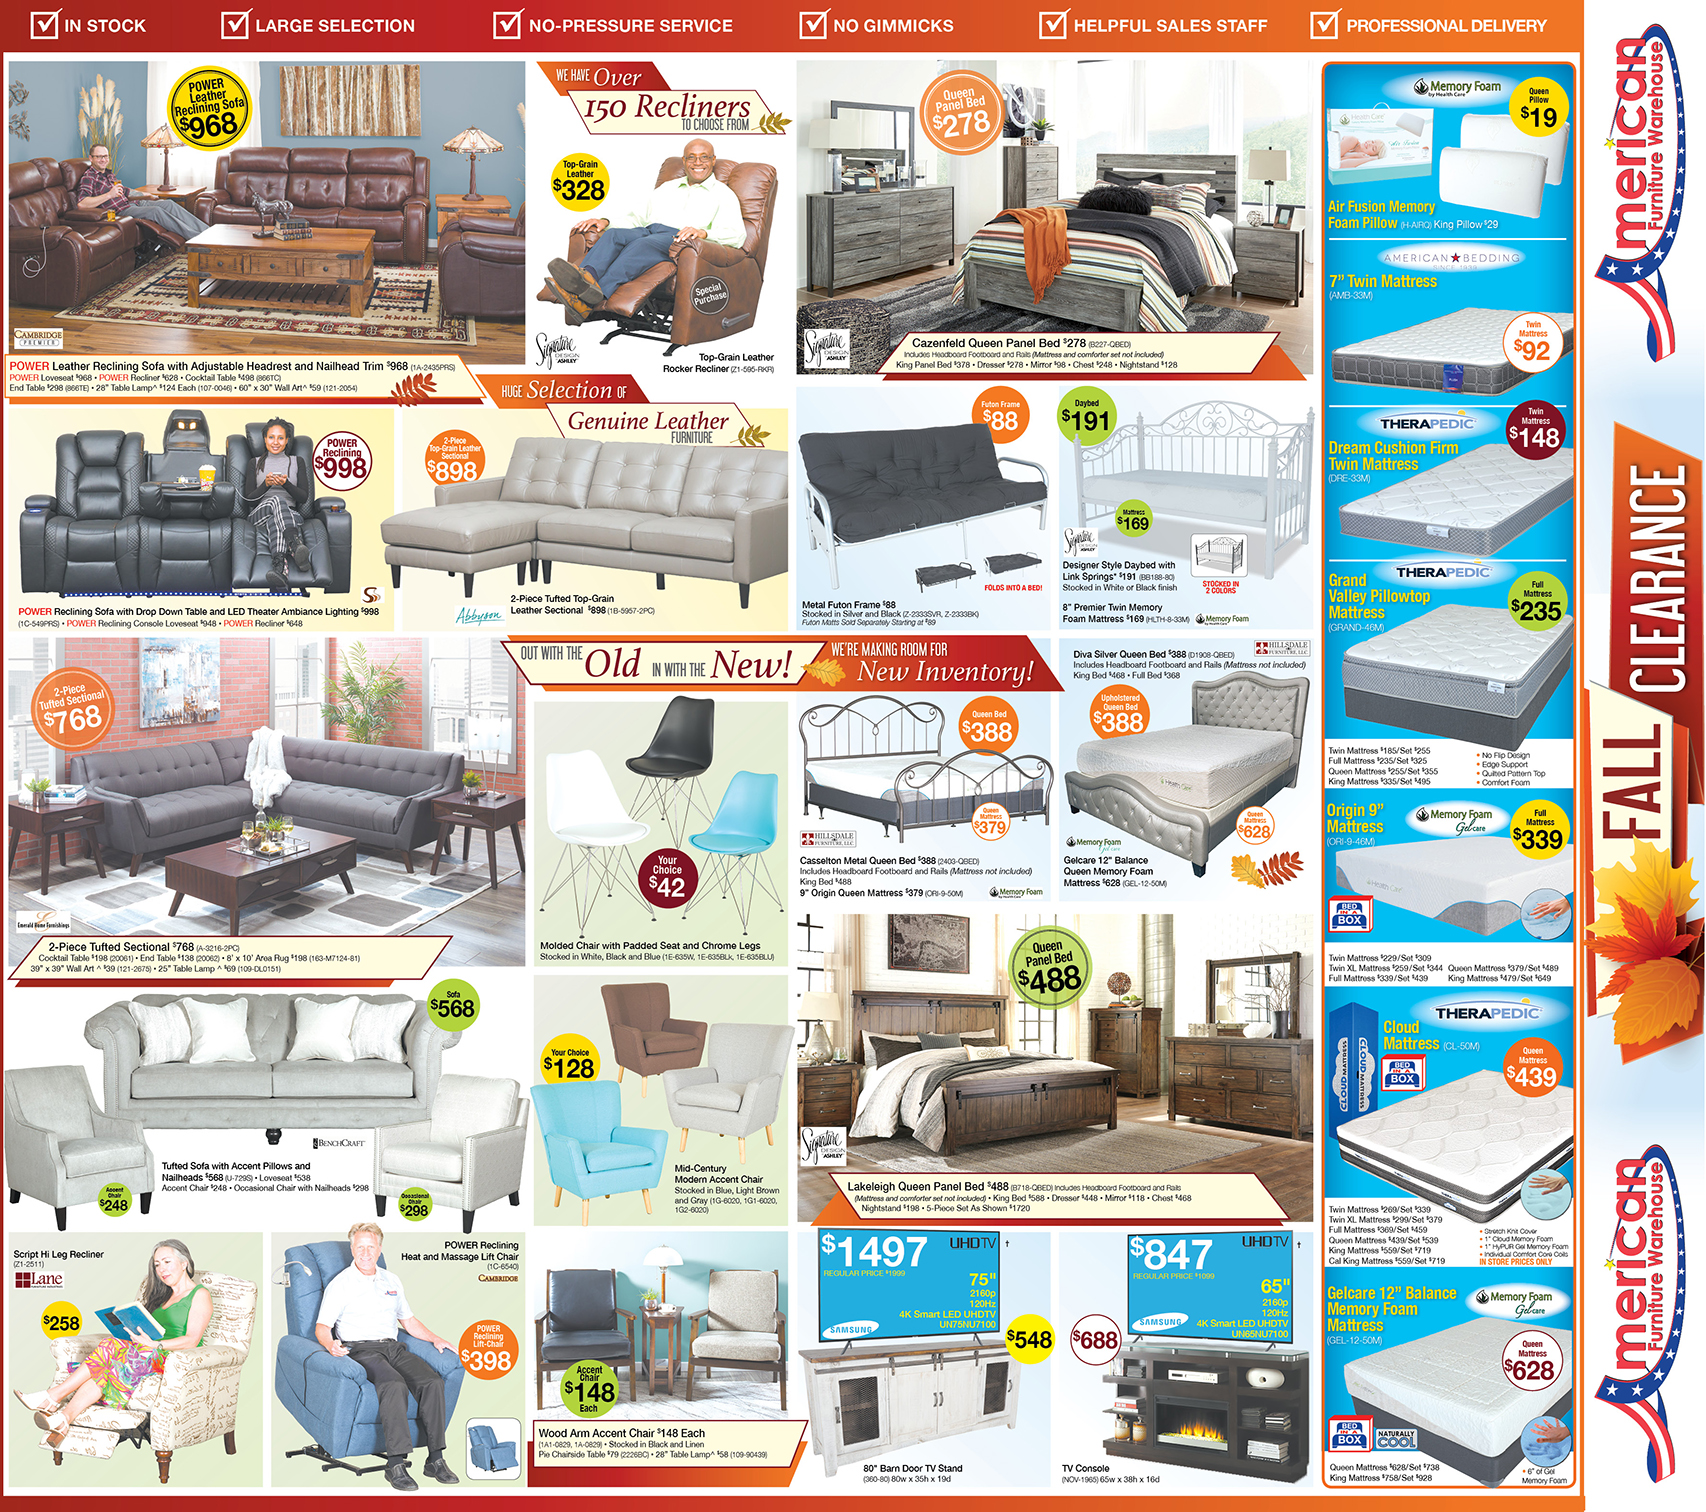 Fall Clearance Event Savings Arizona Ad for Sleeper Sofas, Beds, Patio Furniture & More | Best Buys and Large Selection in Mattresses and furniture